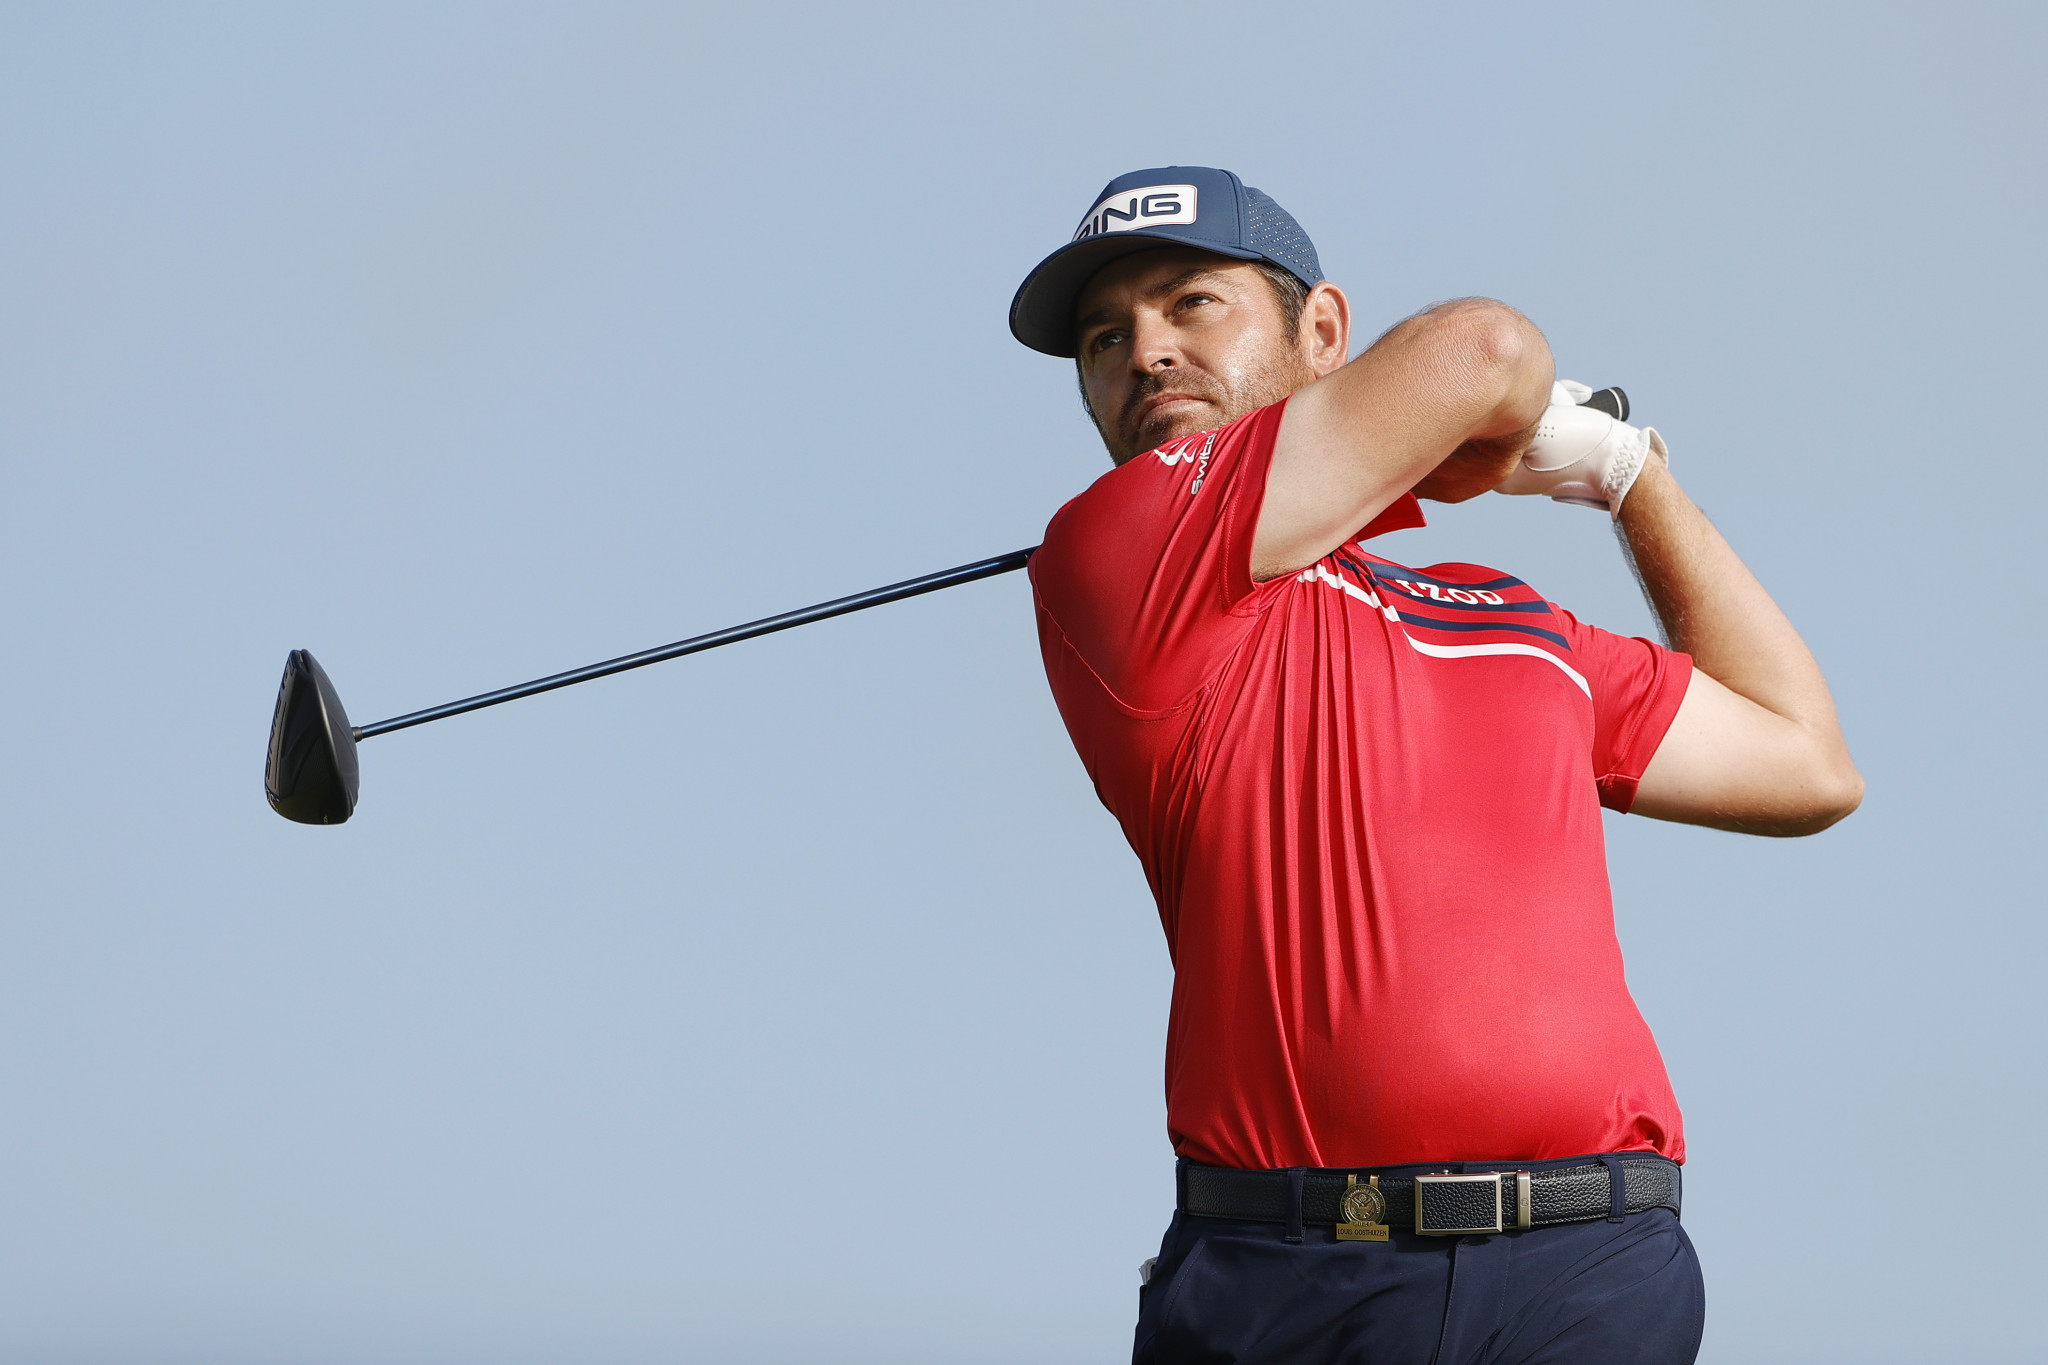 South Africa's Louis Oosthuizen shares the lead heading into the final round of the US Open in San Diego ©Getty Images